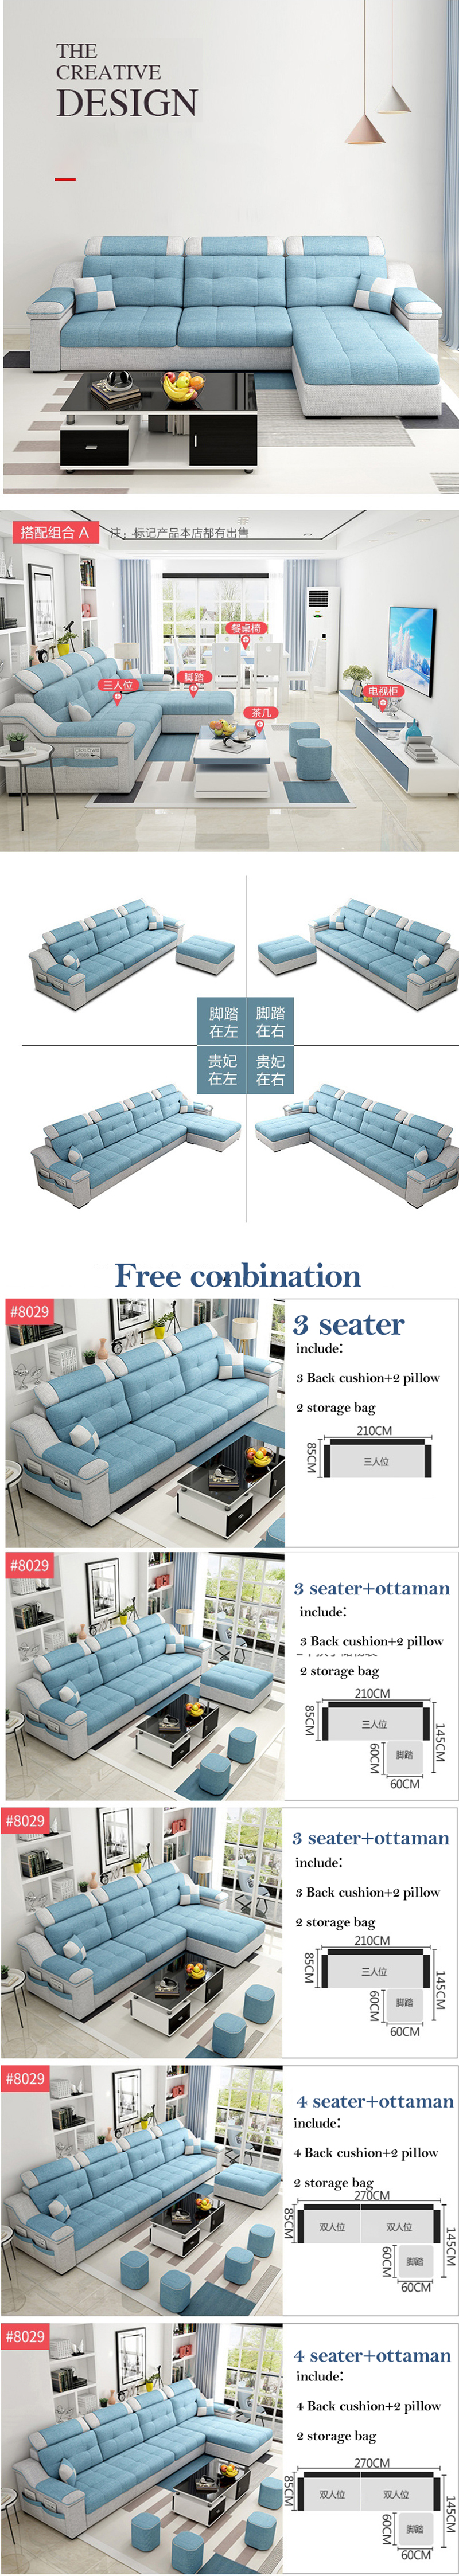 Luxury modern latest designs slipcover 7 seater L shape ottoman corner recliner sectionals home office furniture couch living r